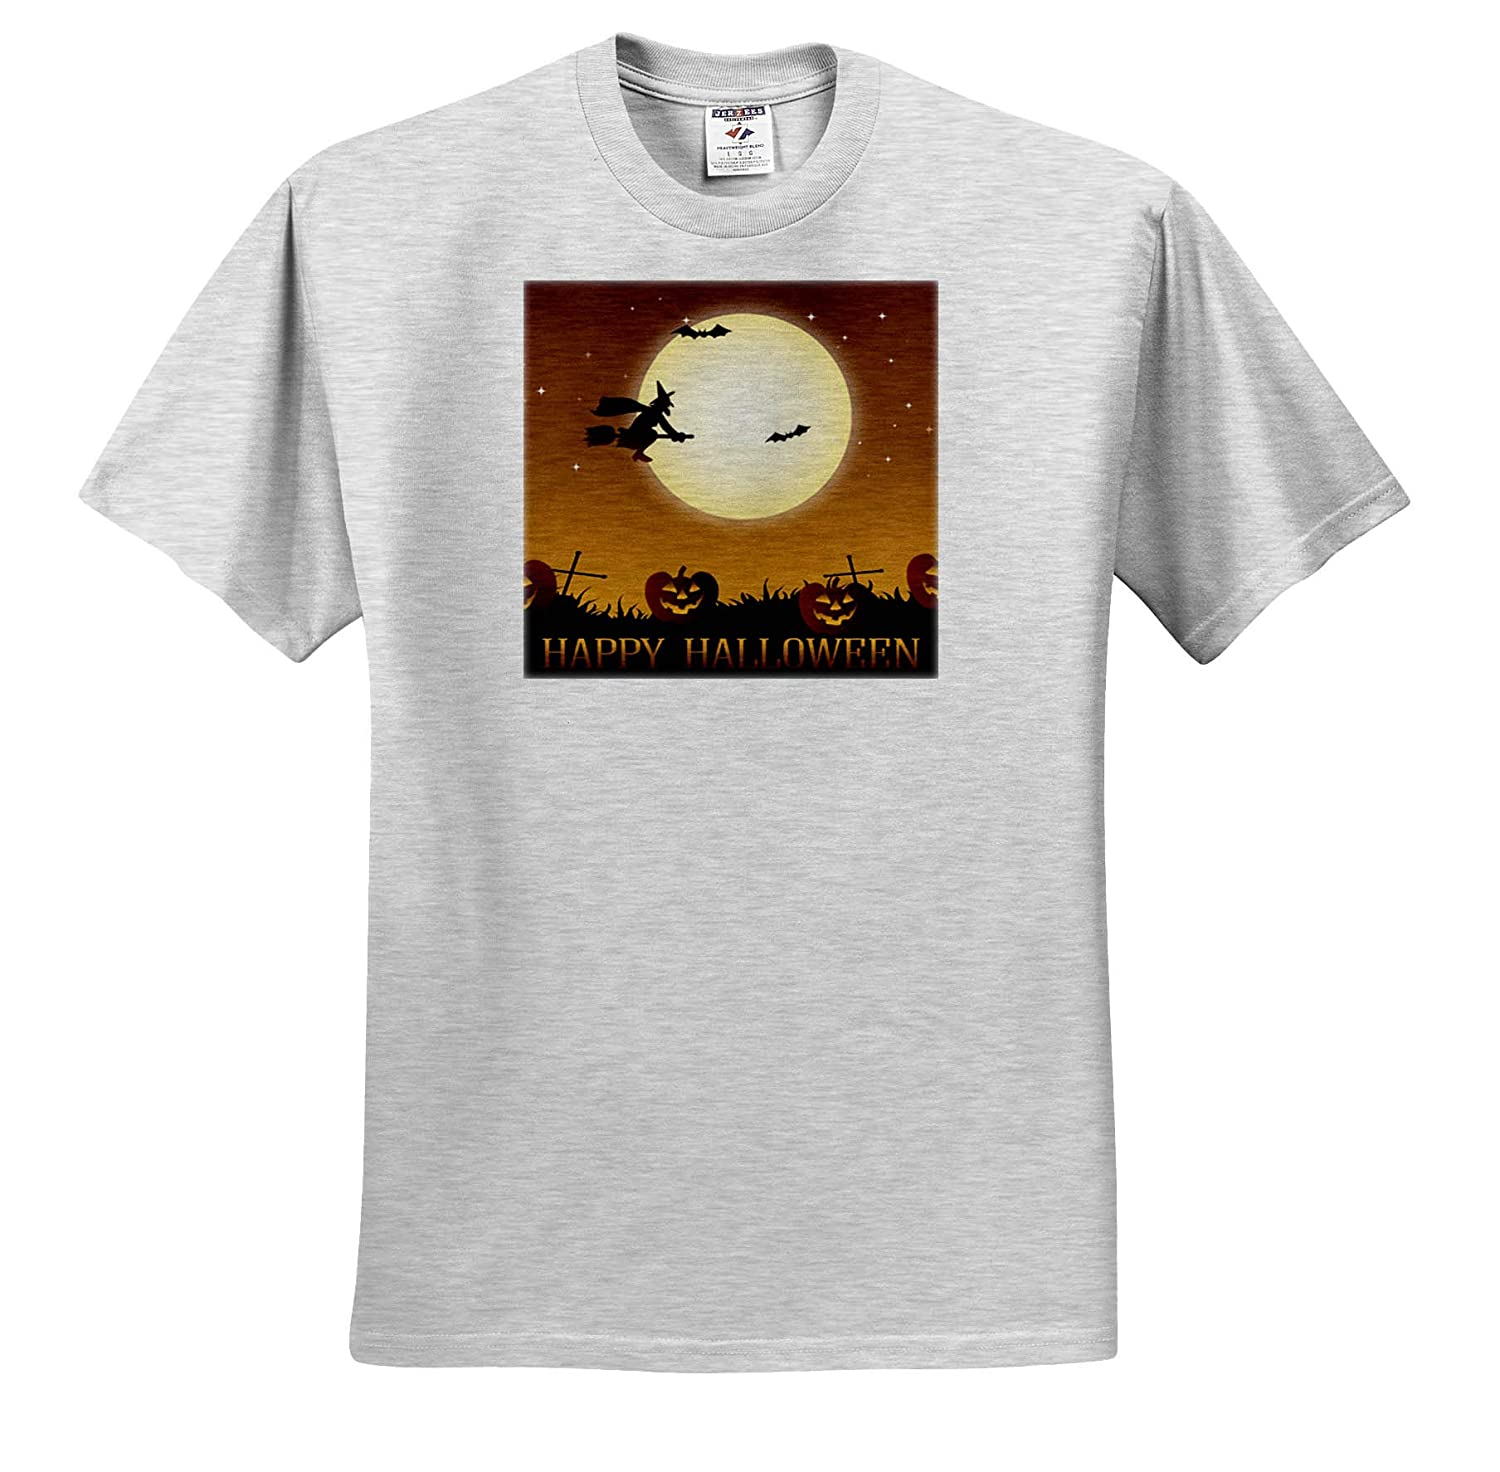 T-Shirts 3dRose Sven Herkenrath Celebration Happy Halloween with Witch and Bat Pumpkin